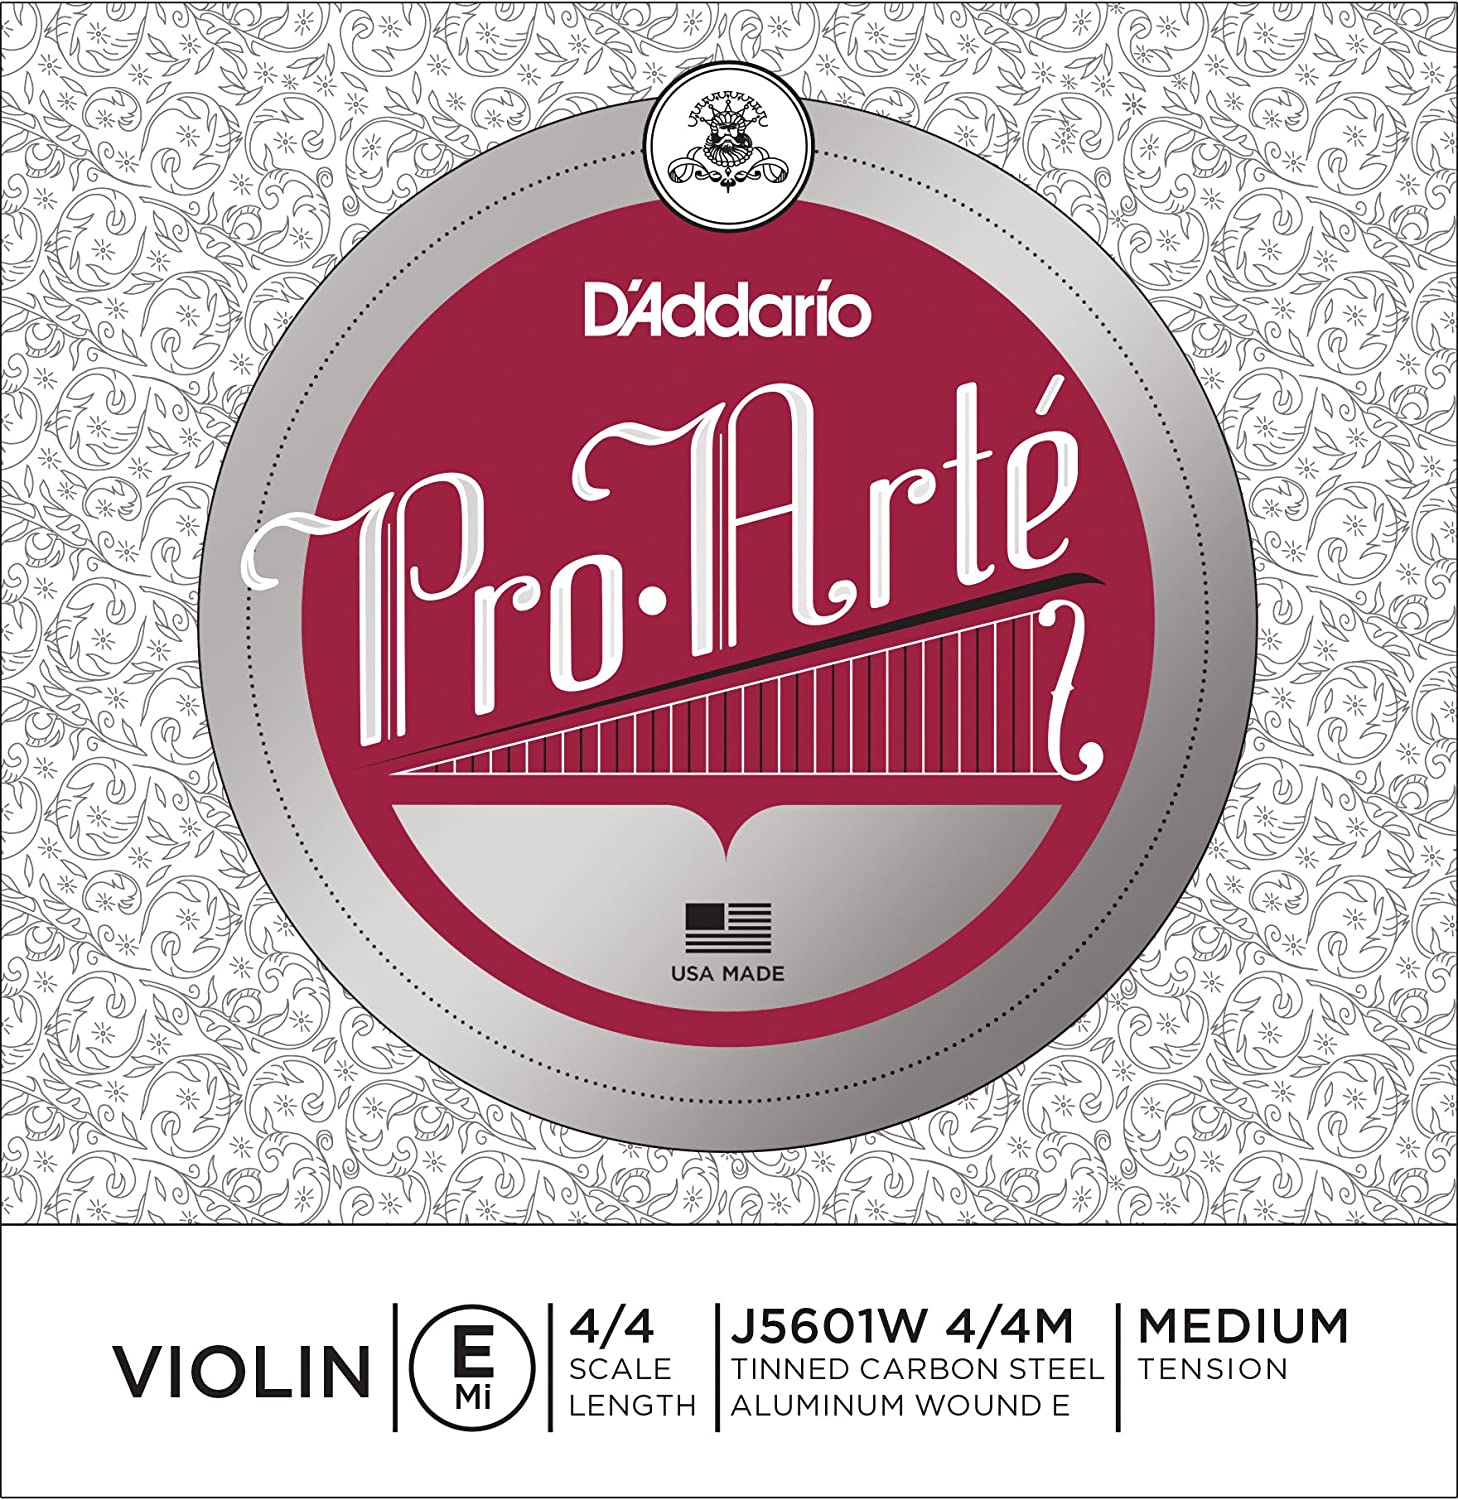 D'Addario Pro-Arte Violin Single Aluminum Wound E String, 4/4 Scale, Medium Tension D' Addario J5601W 4/4M